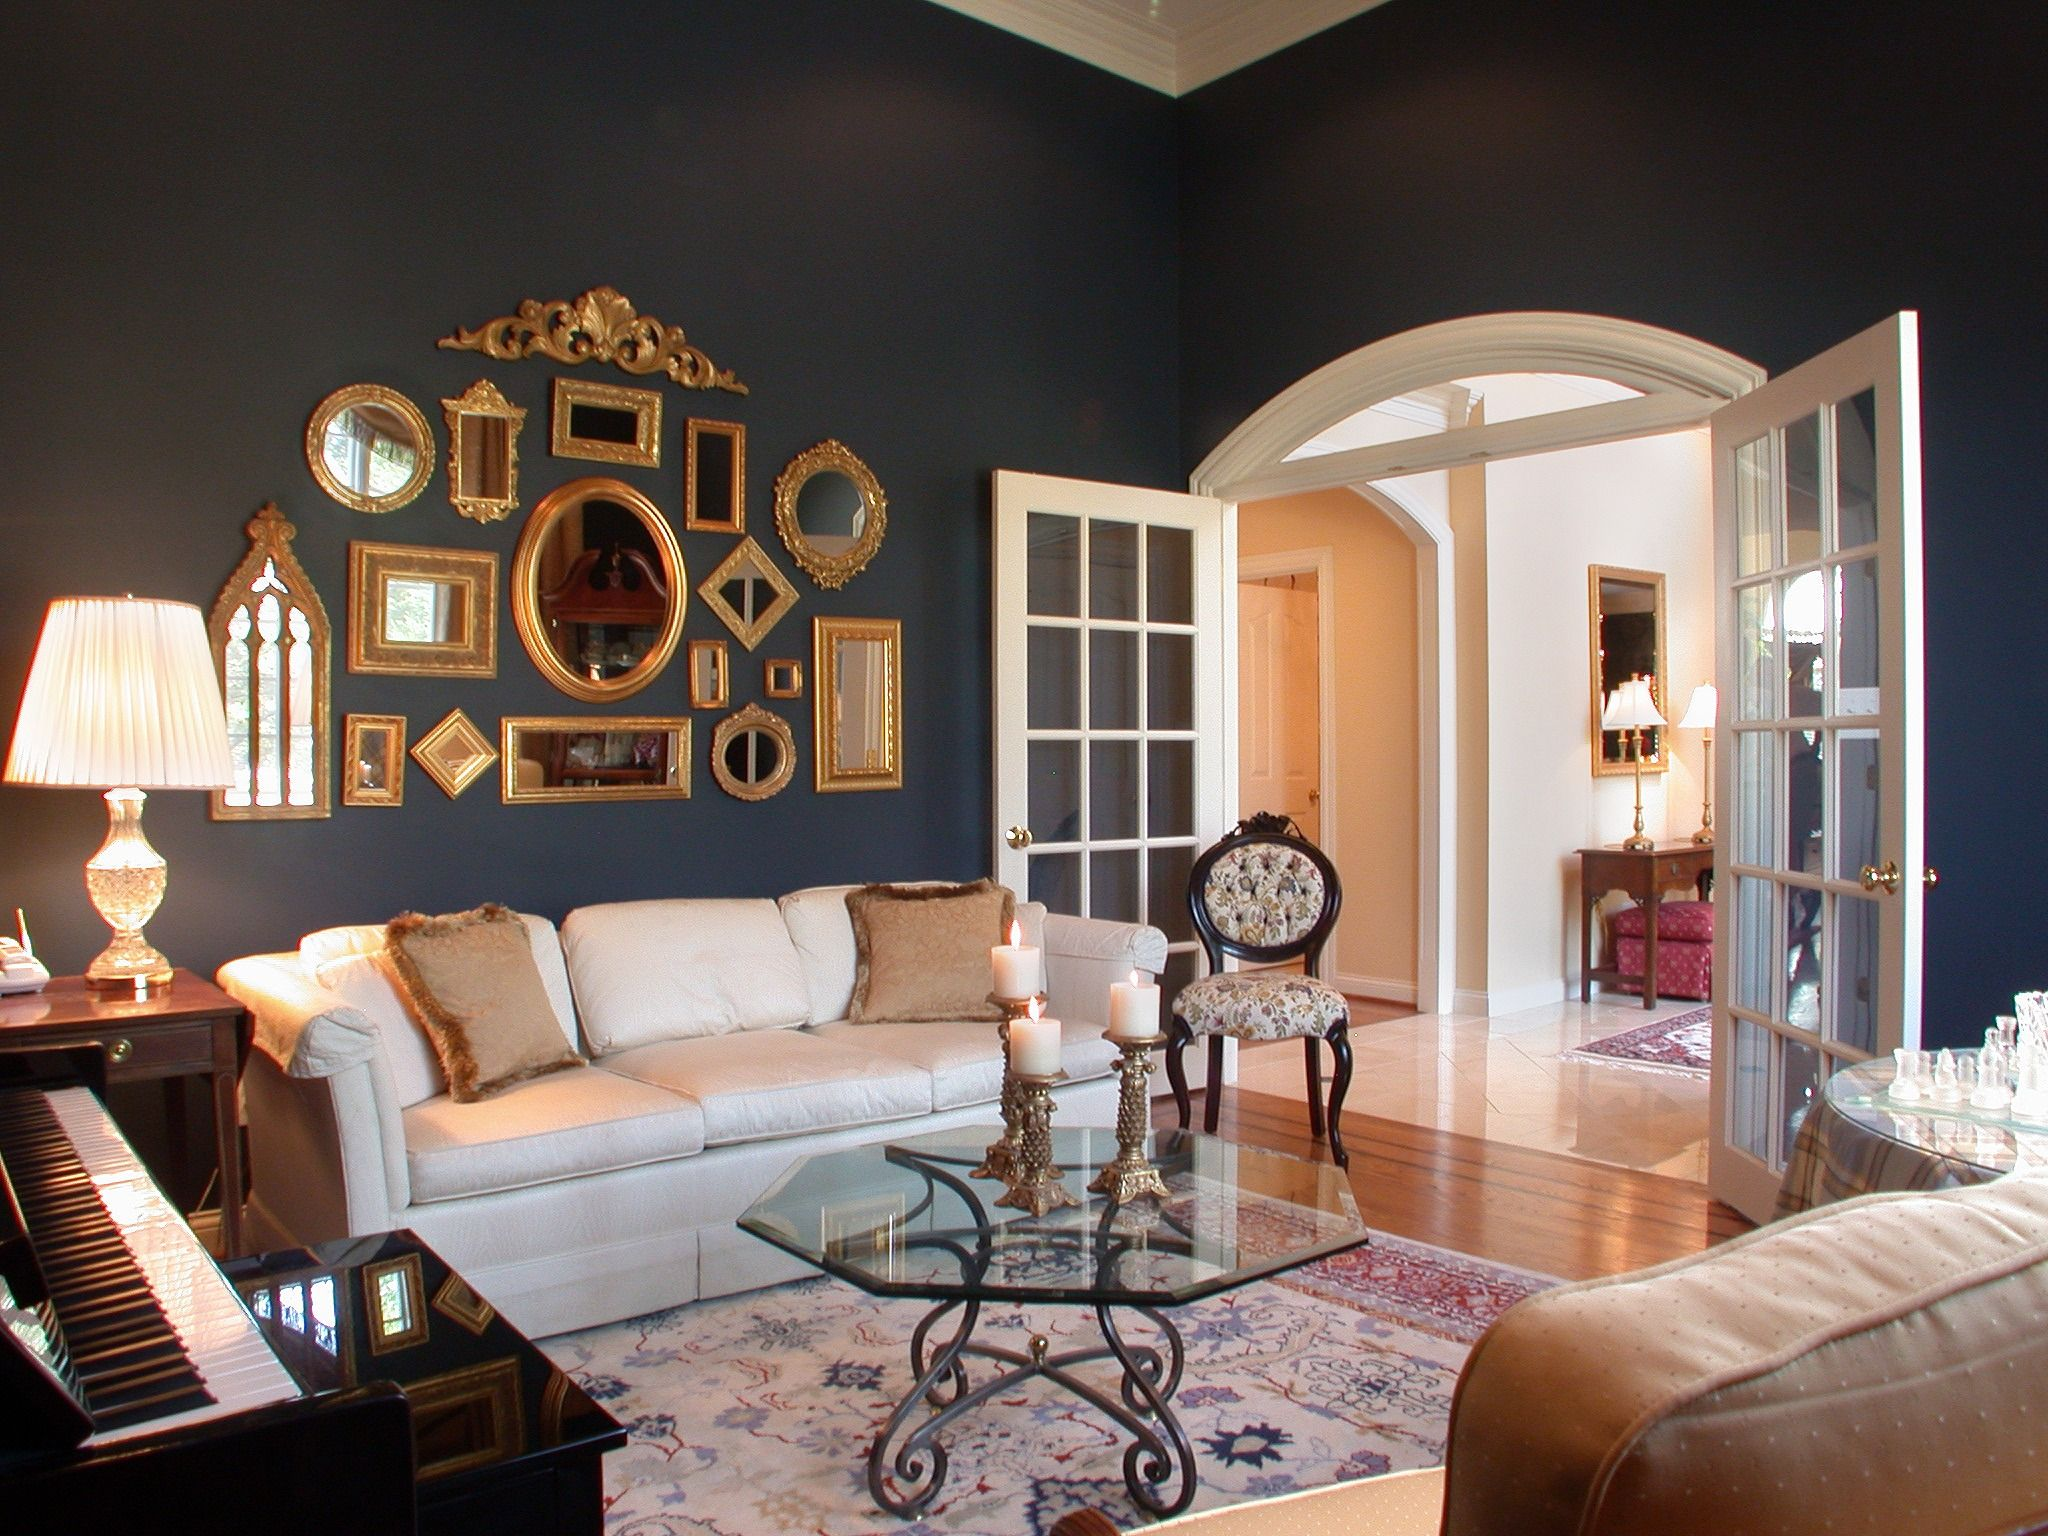 15 Best Collection of Large White Framed Wall Mirrors